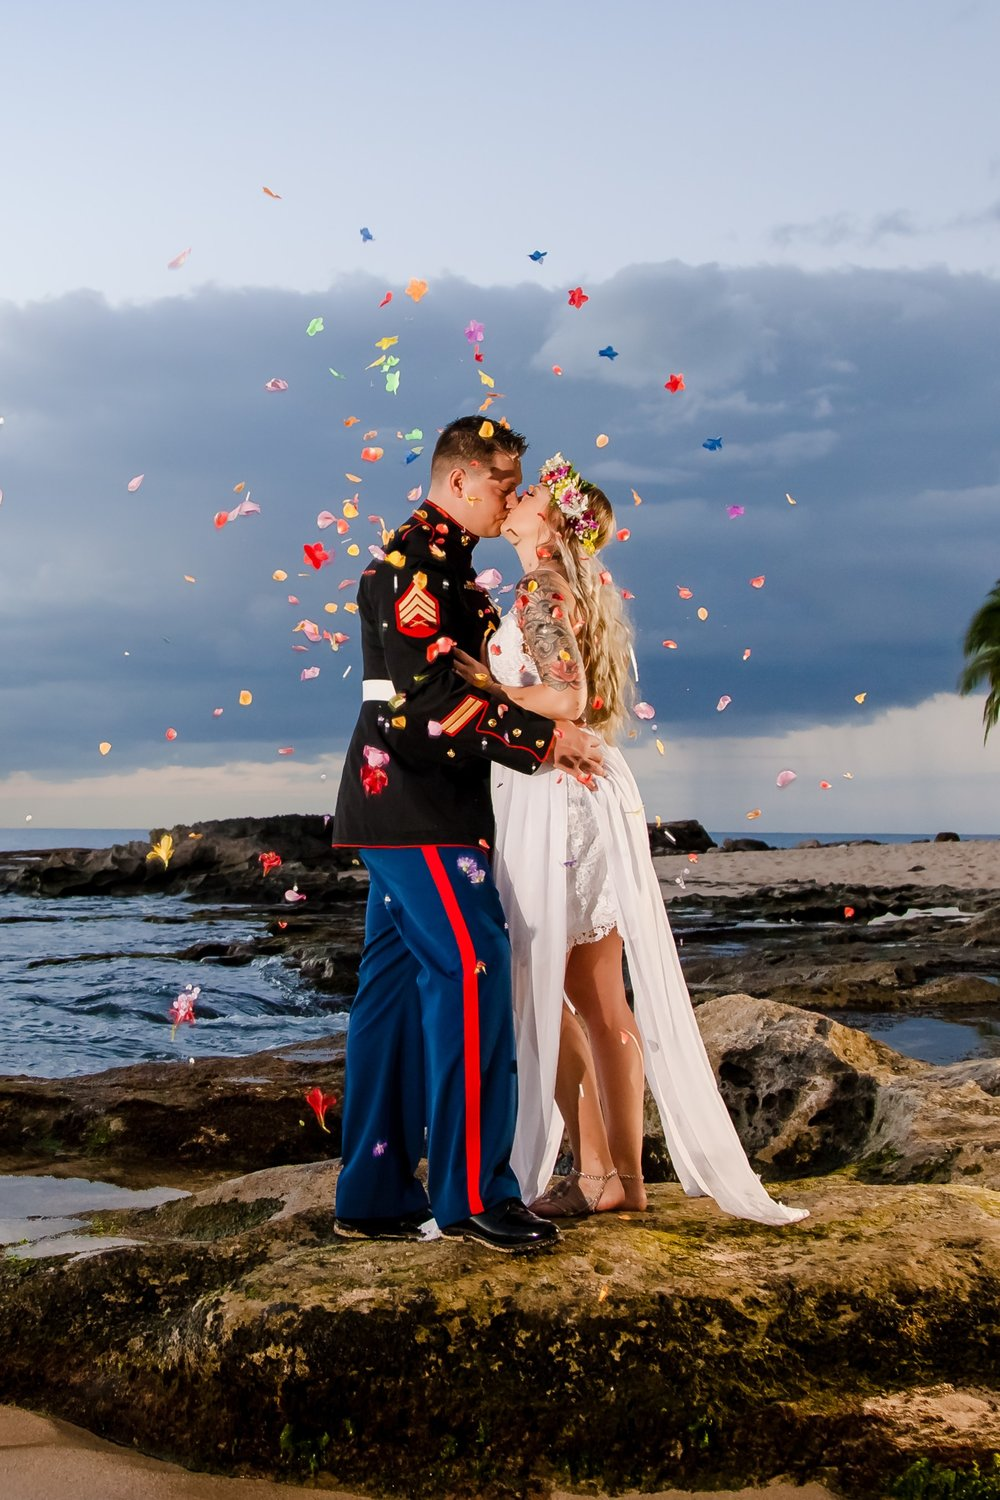 oahu beach engagement proposal couples photography sunrise waikiki hawaii